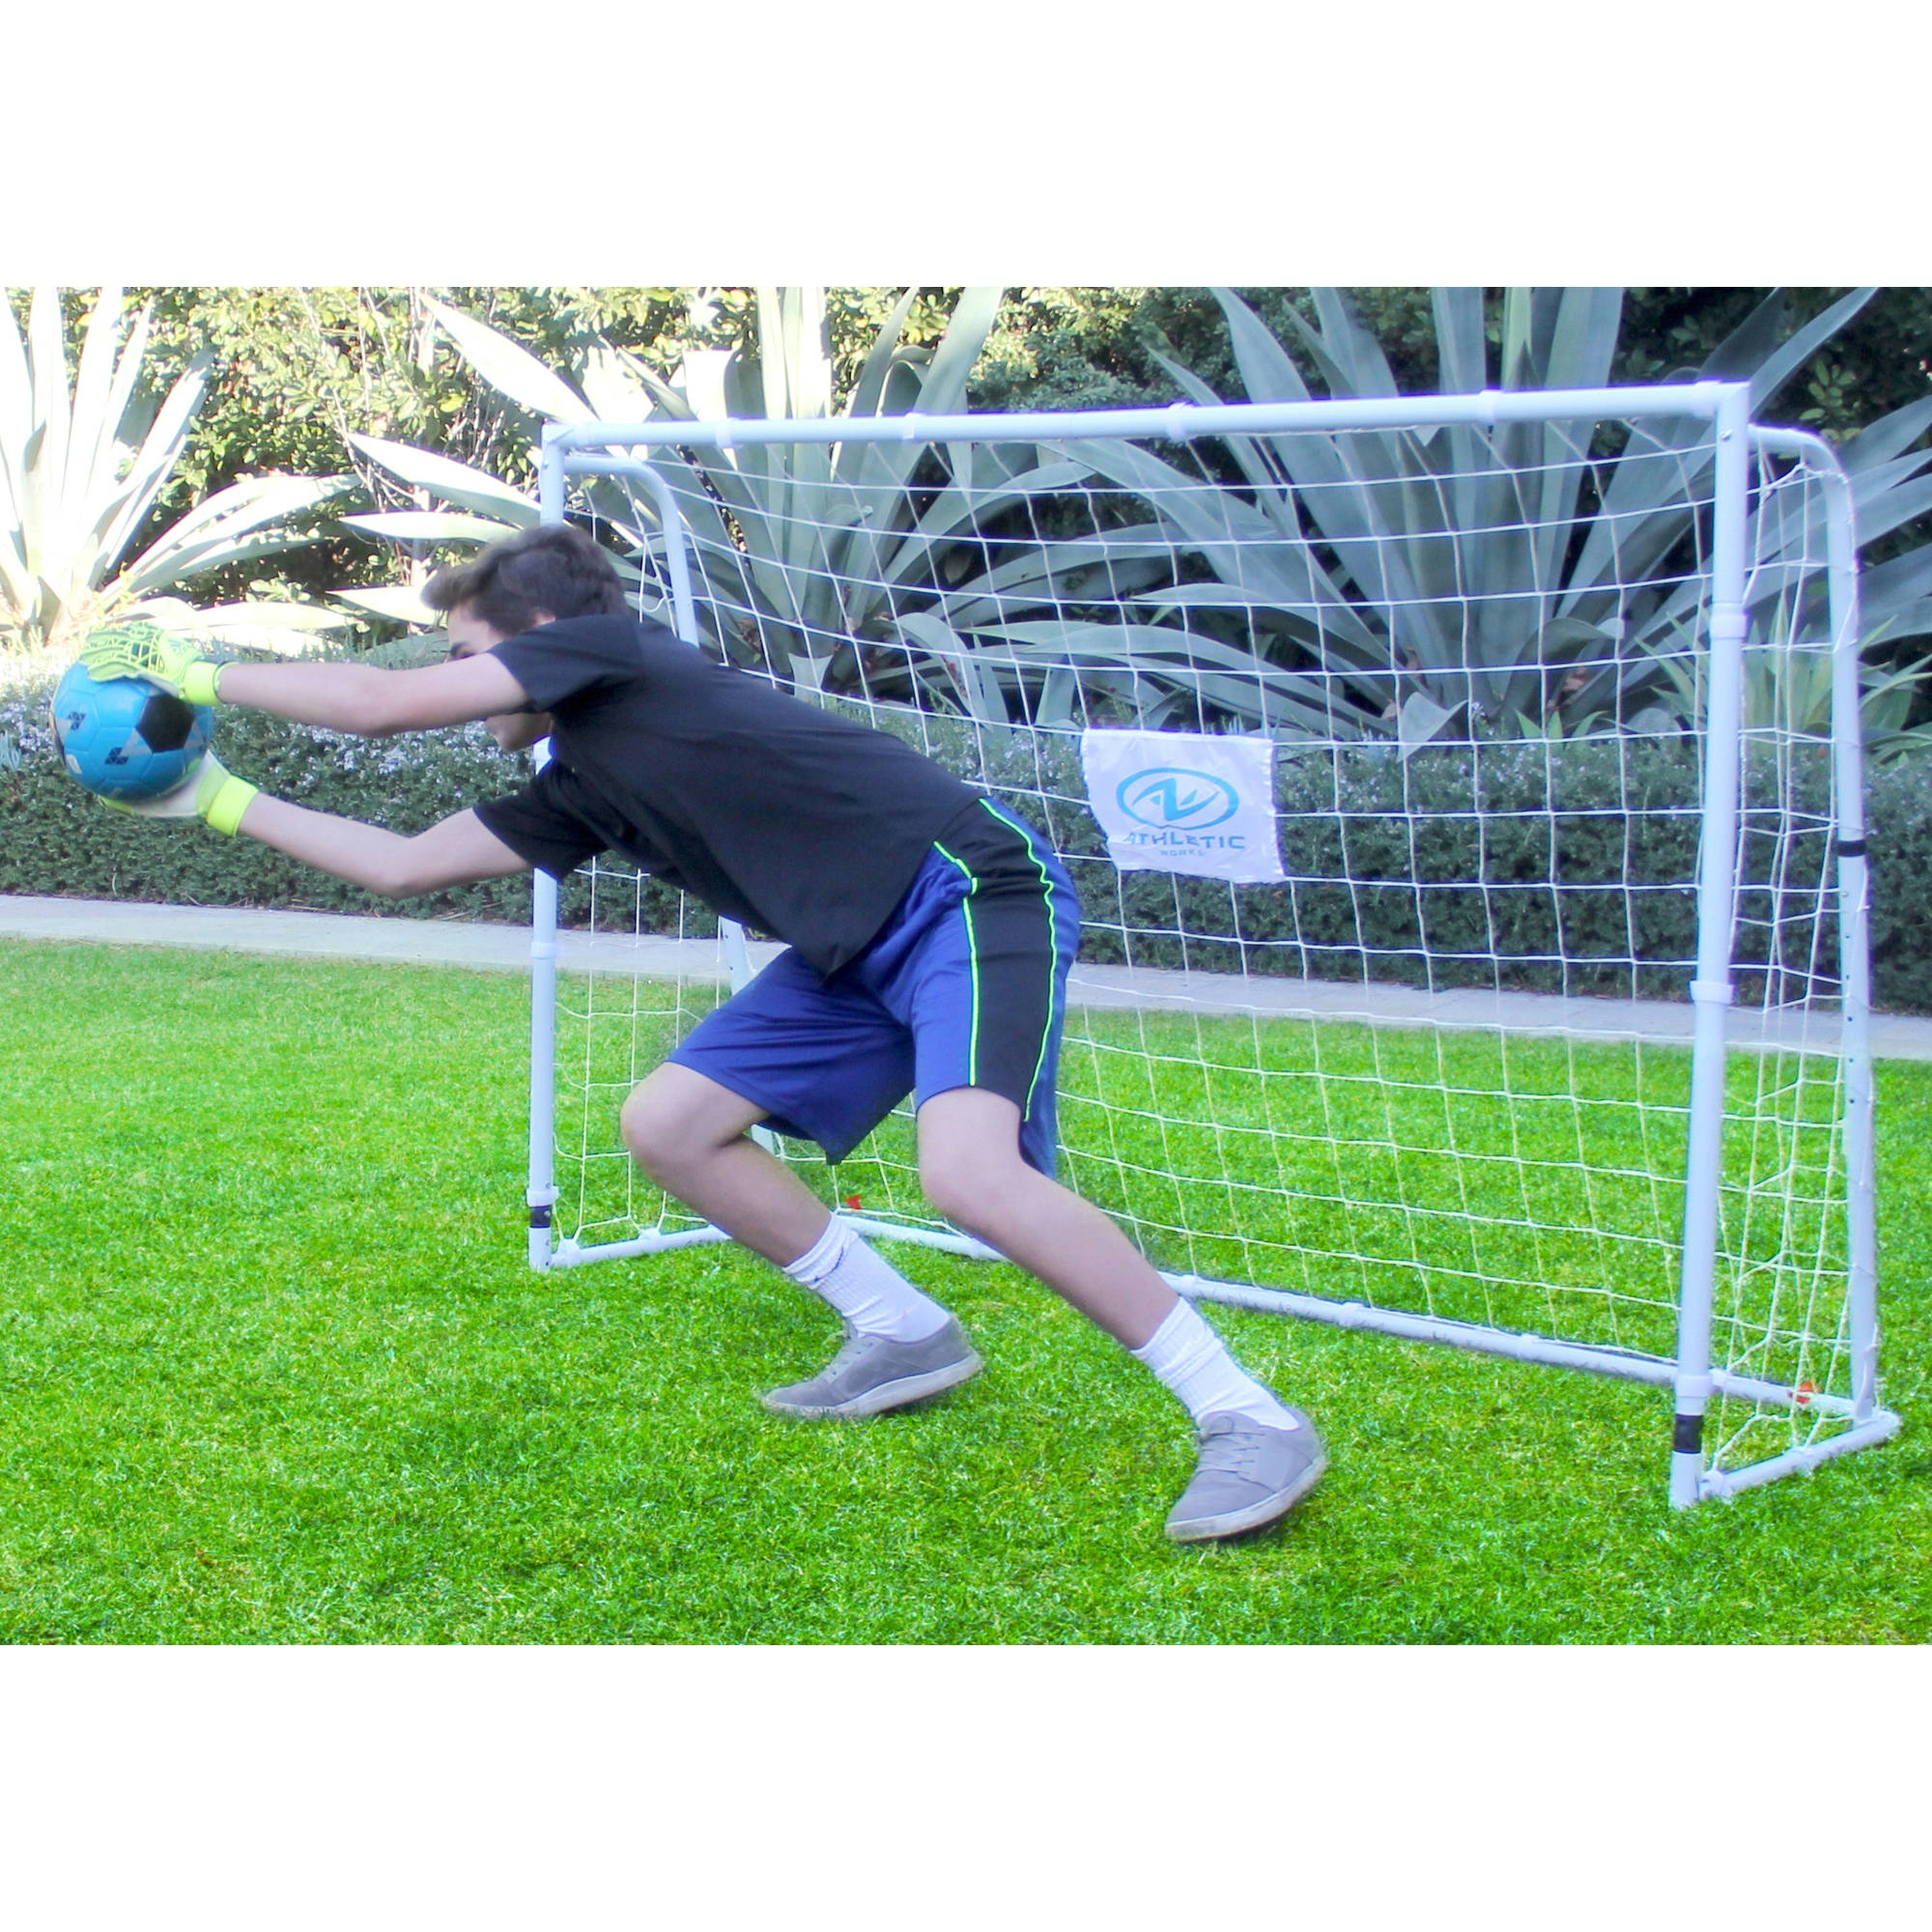 Athletic Works 4' x 6' Deluxe Soccer Goal by Sportspower Limited